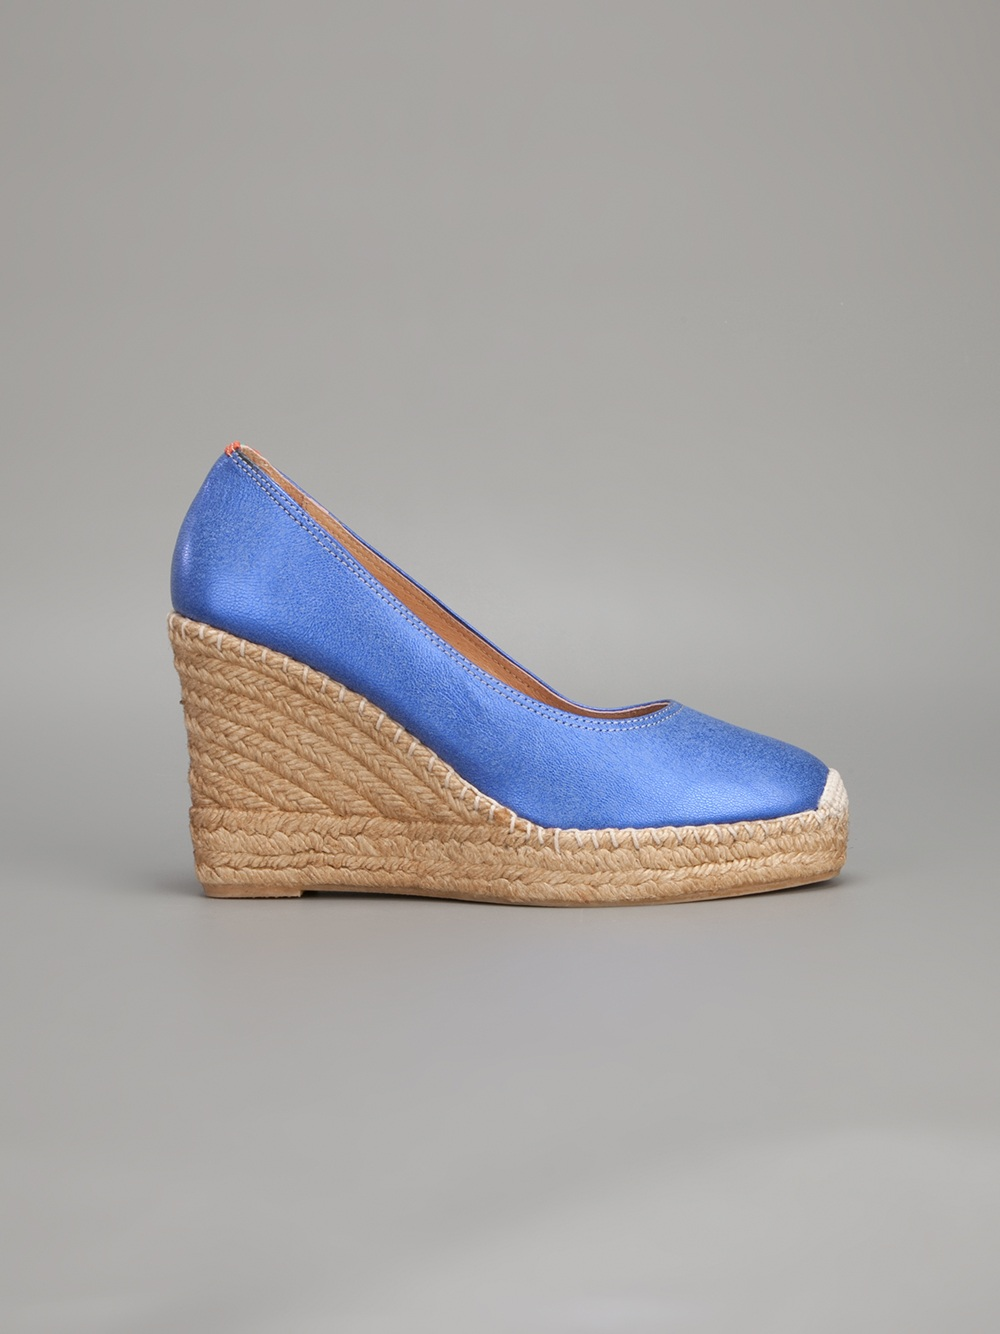 Chaussures - Espadrilles Penelope Chilvers